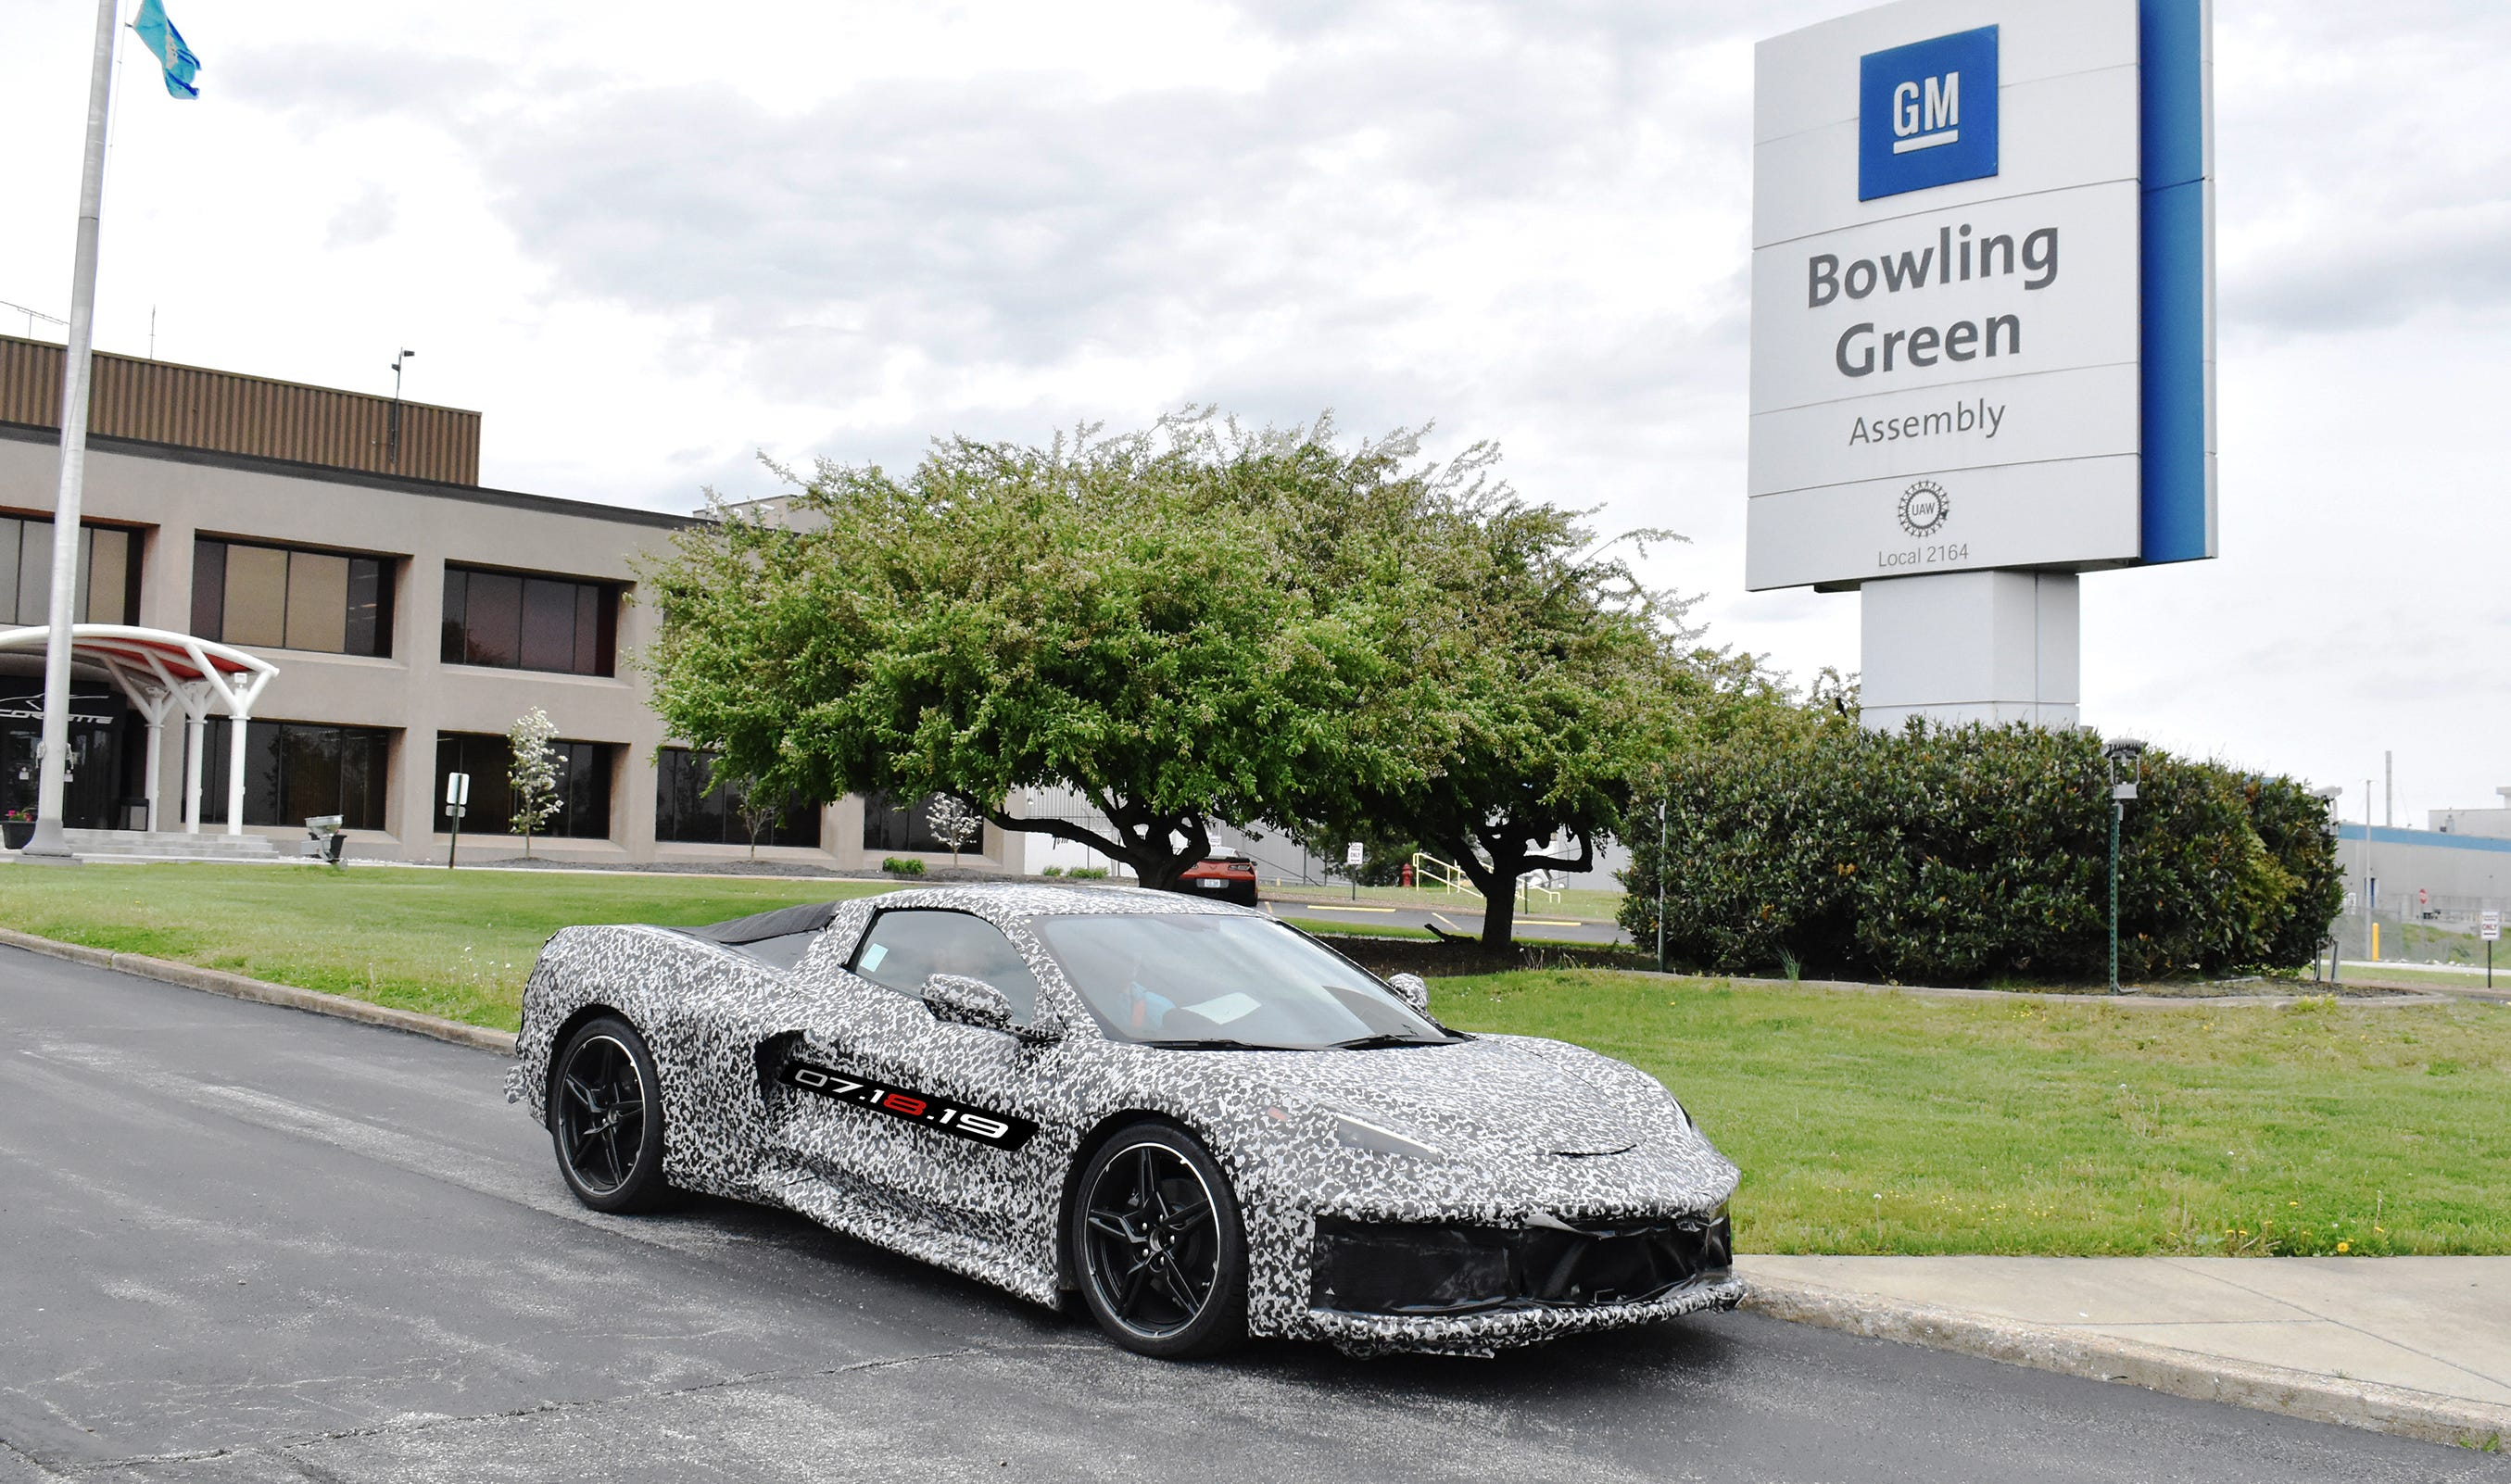 General Motors announced on Thursday, April 25 it is adding a second shift and more than 400 hourly jobs at its Bowling Green (Kentucky) Assembly plant to support production of the Next Generation Corvette, which will be revealed on July 18, 2019.